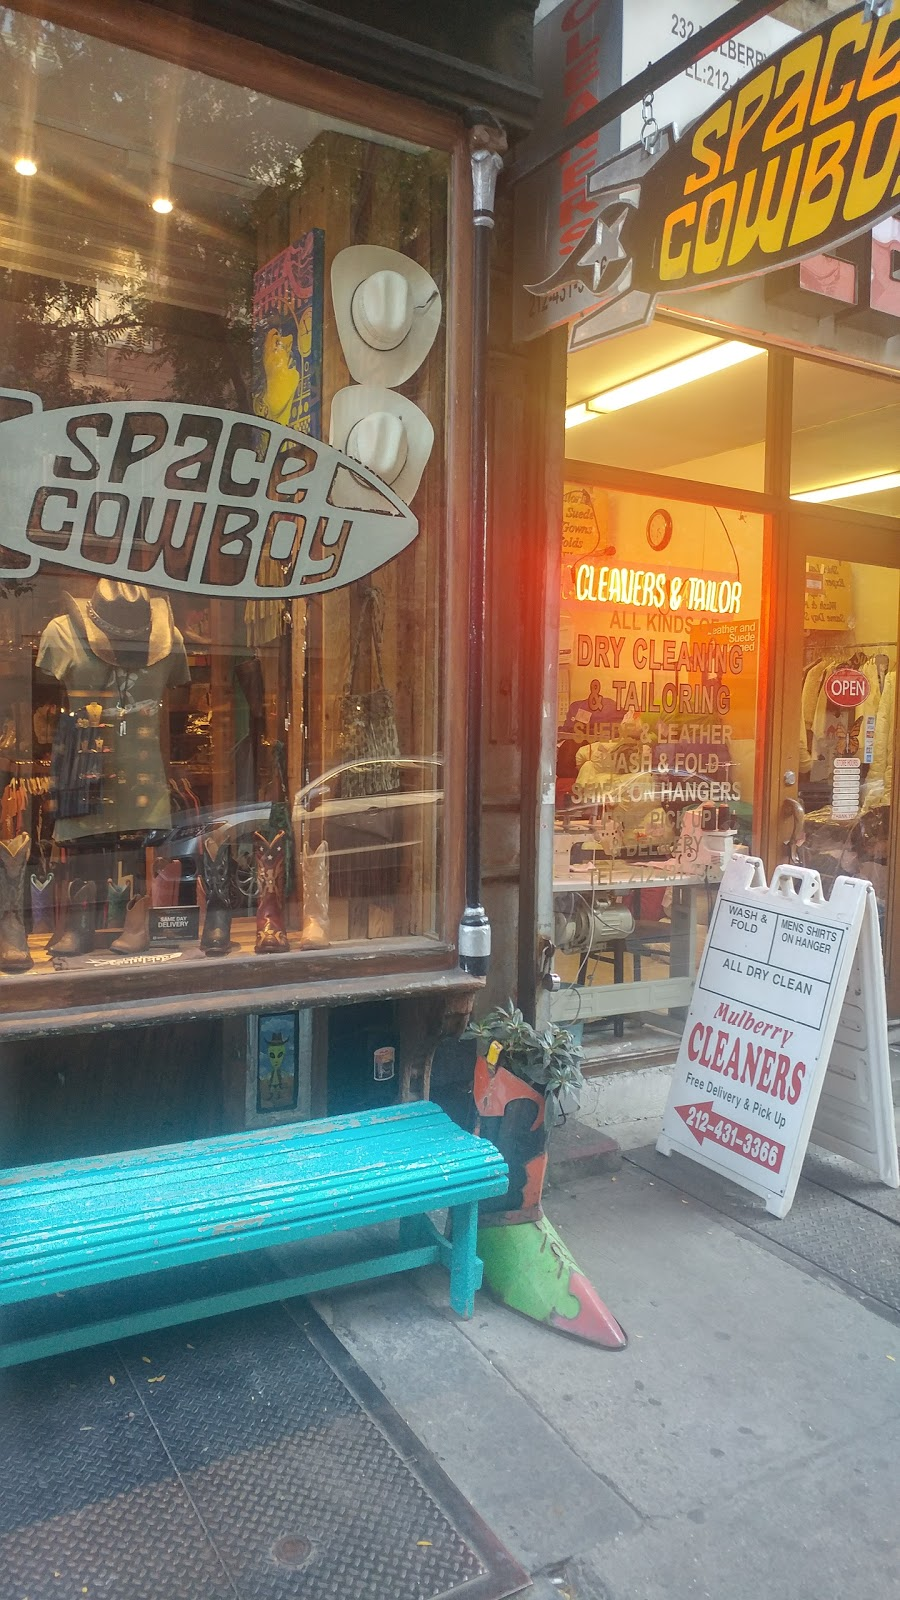 Space Cowboy Boots, NYC - shoe store  | Photo 9 of 10 | Address: 234 Mulberry St, New York, NY 10012, USA | Phone: (646) 559-4779